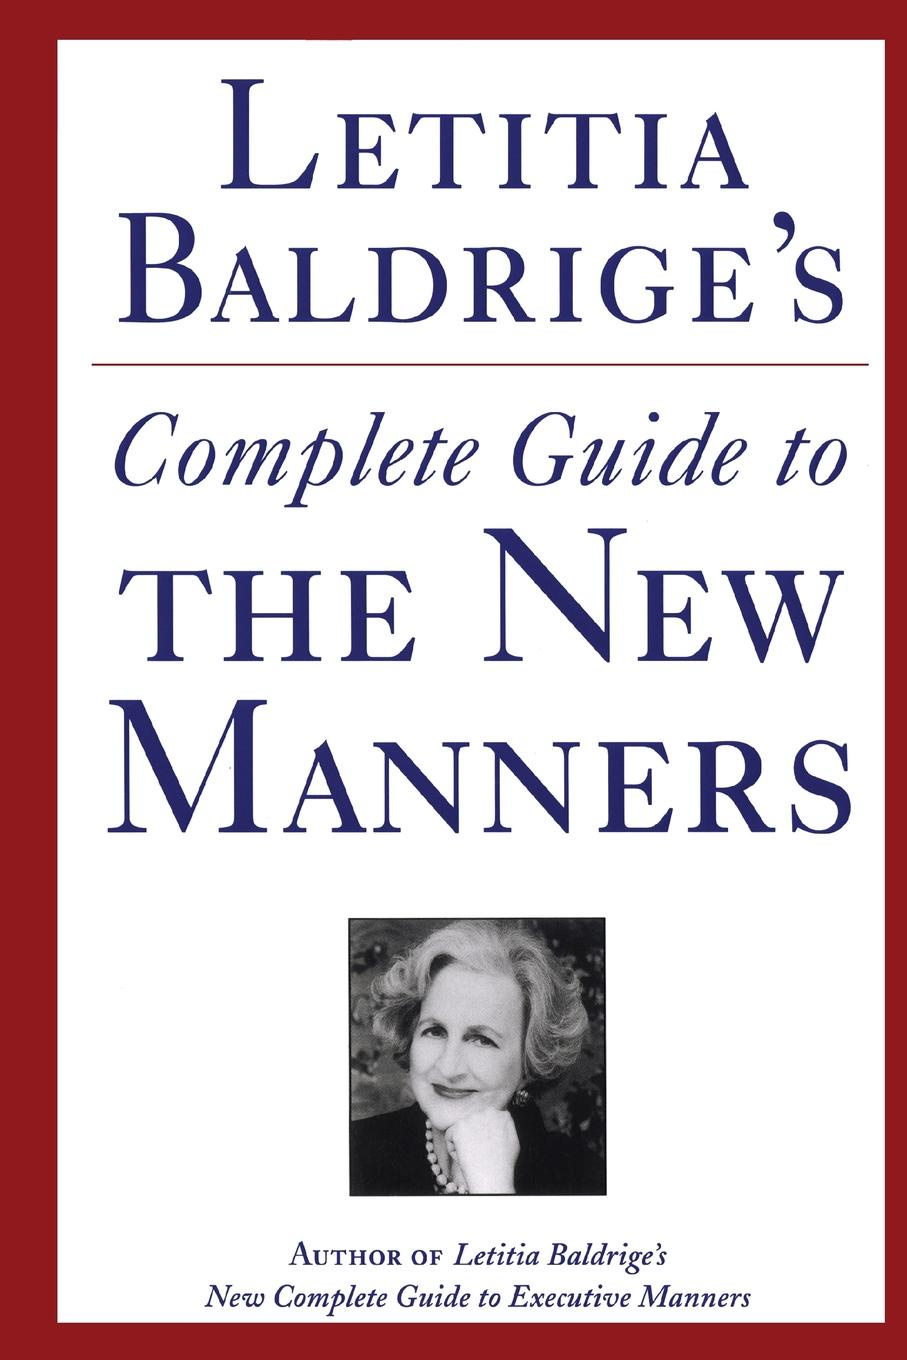 Letitia Baldrige Letitia Baldrige's Complete Guide to the New Manners for the '90s. A Complete Guide to Etiquette karen j carlson the new harvard guide to womens s health